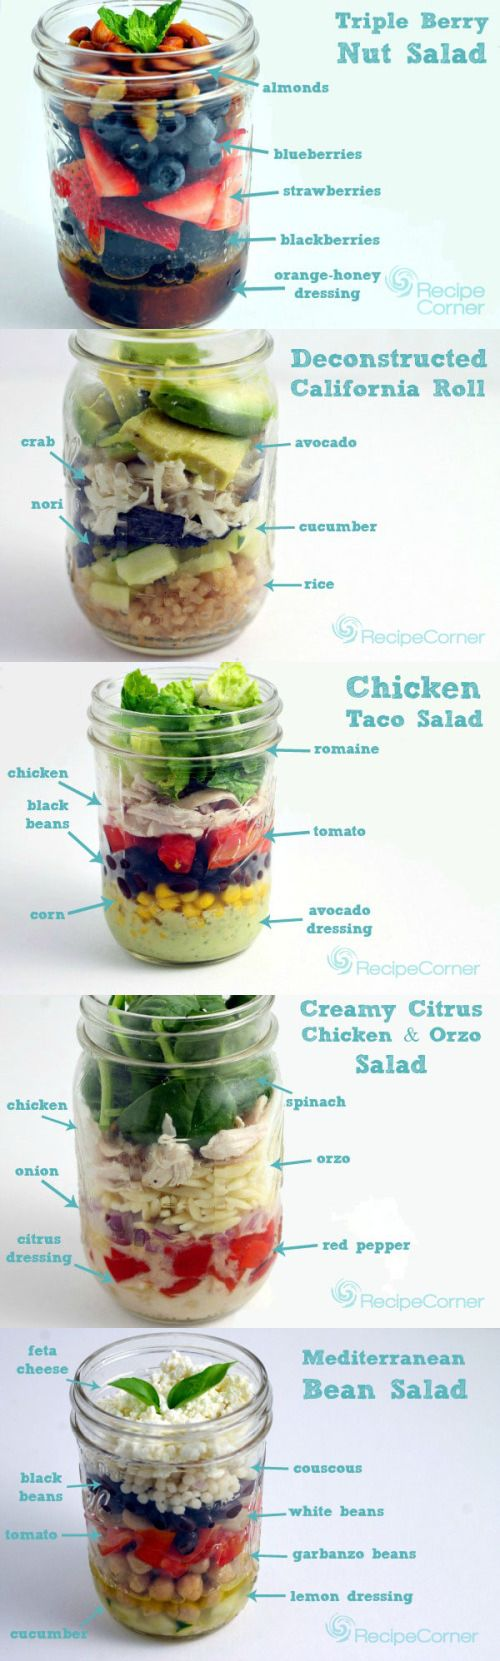 Power bowls, mason jar salads, and a healthy breakfast recipe that's even sweet enough for dessert!